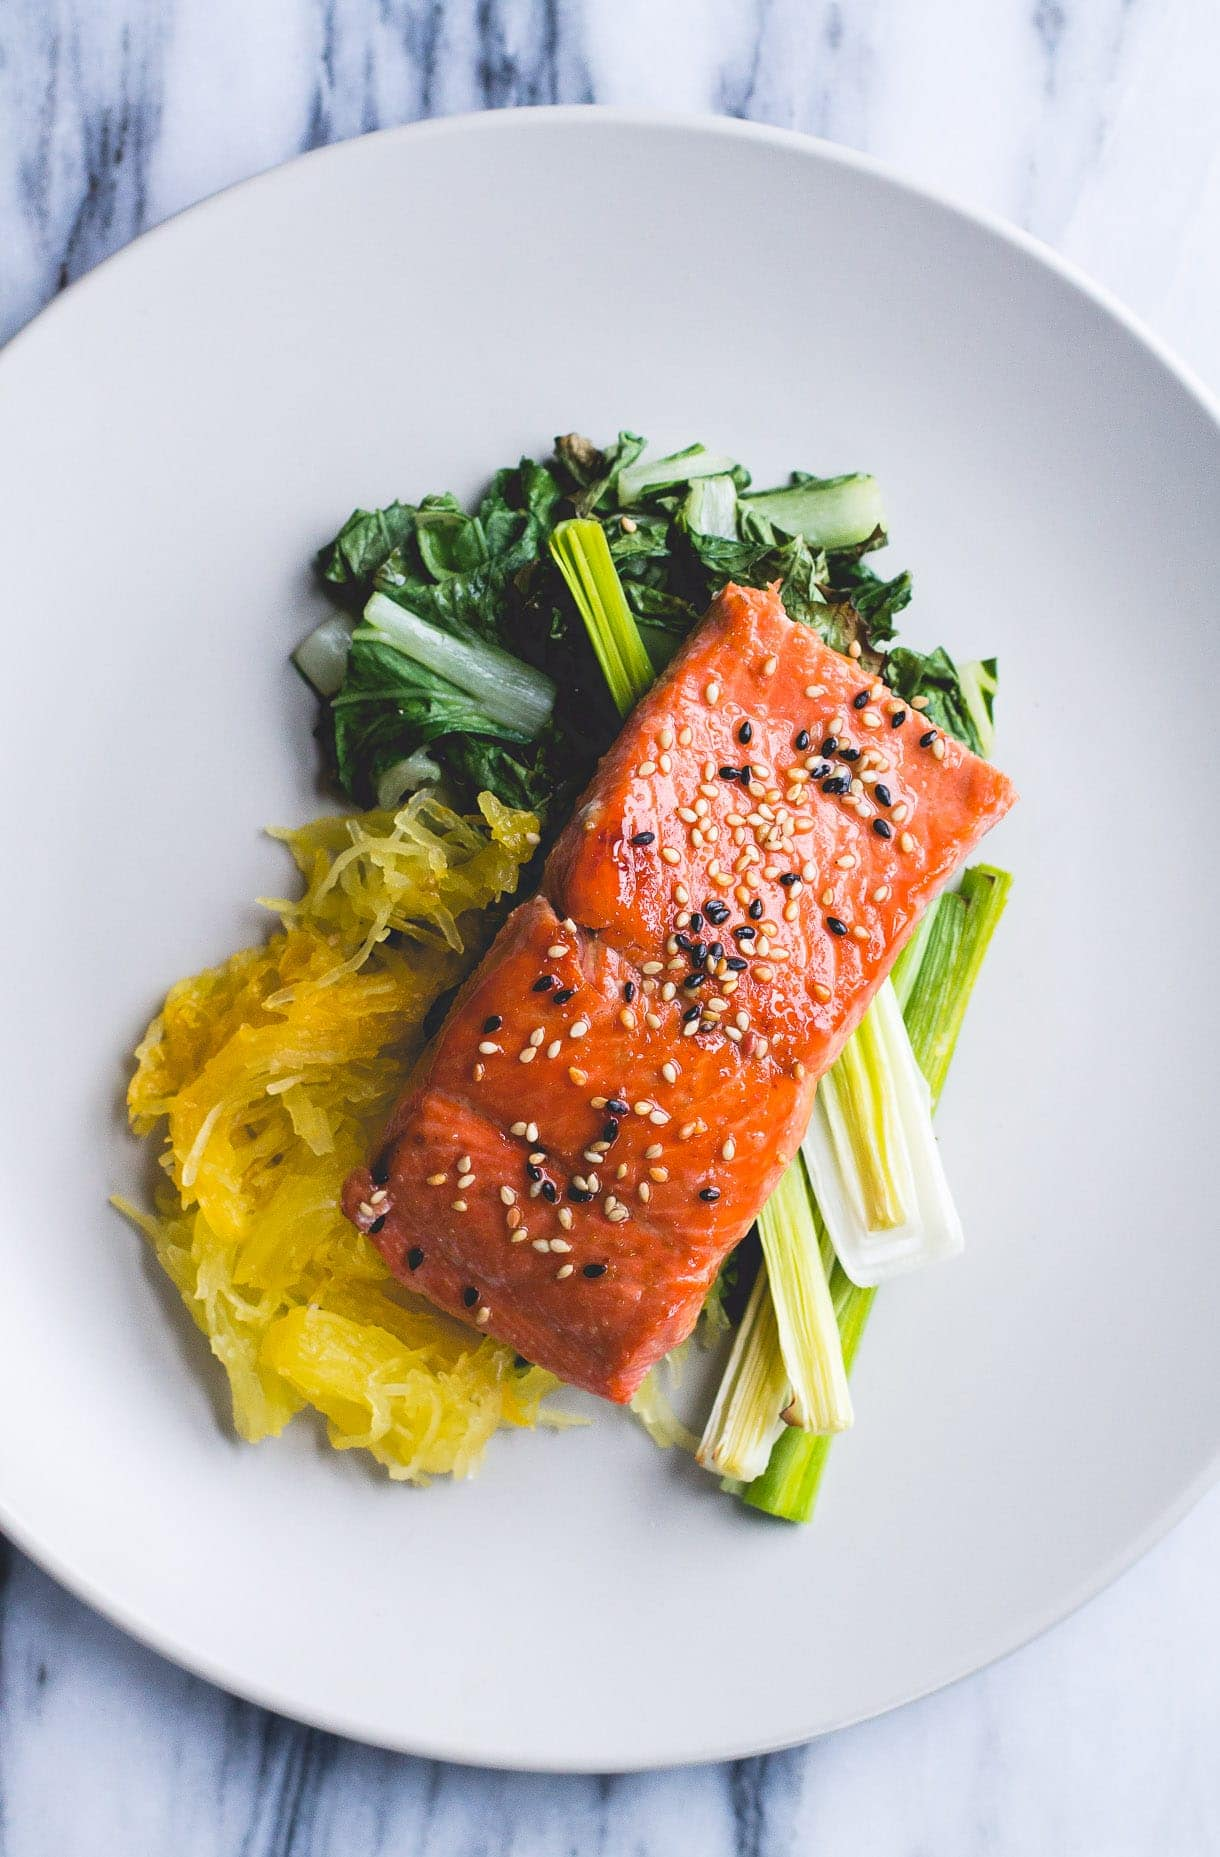 Oven Roasted Paleo Salmon Recipe with Spaghetti Squash